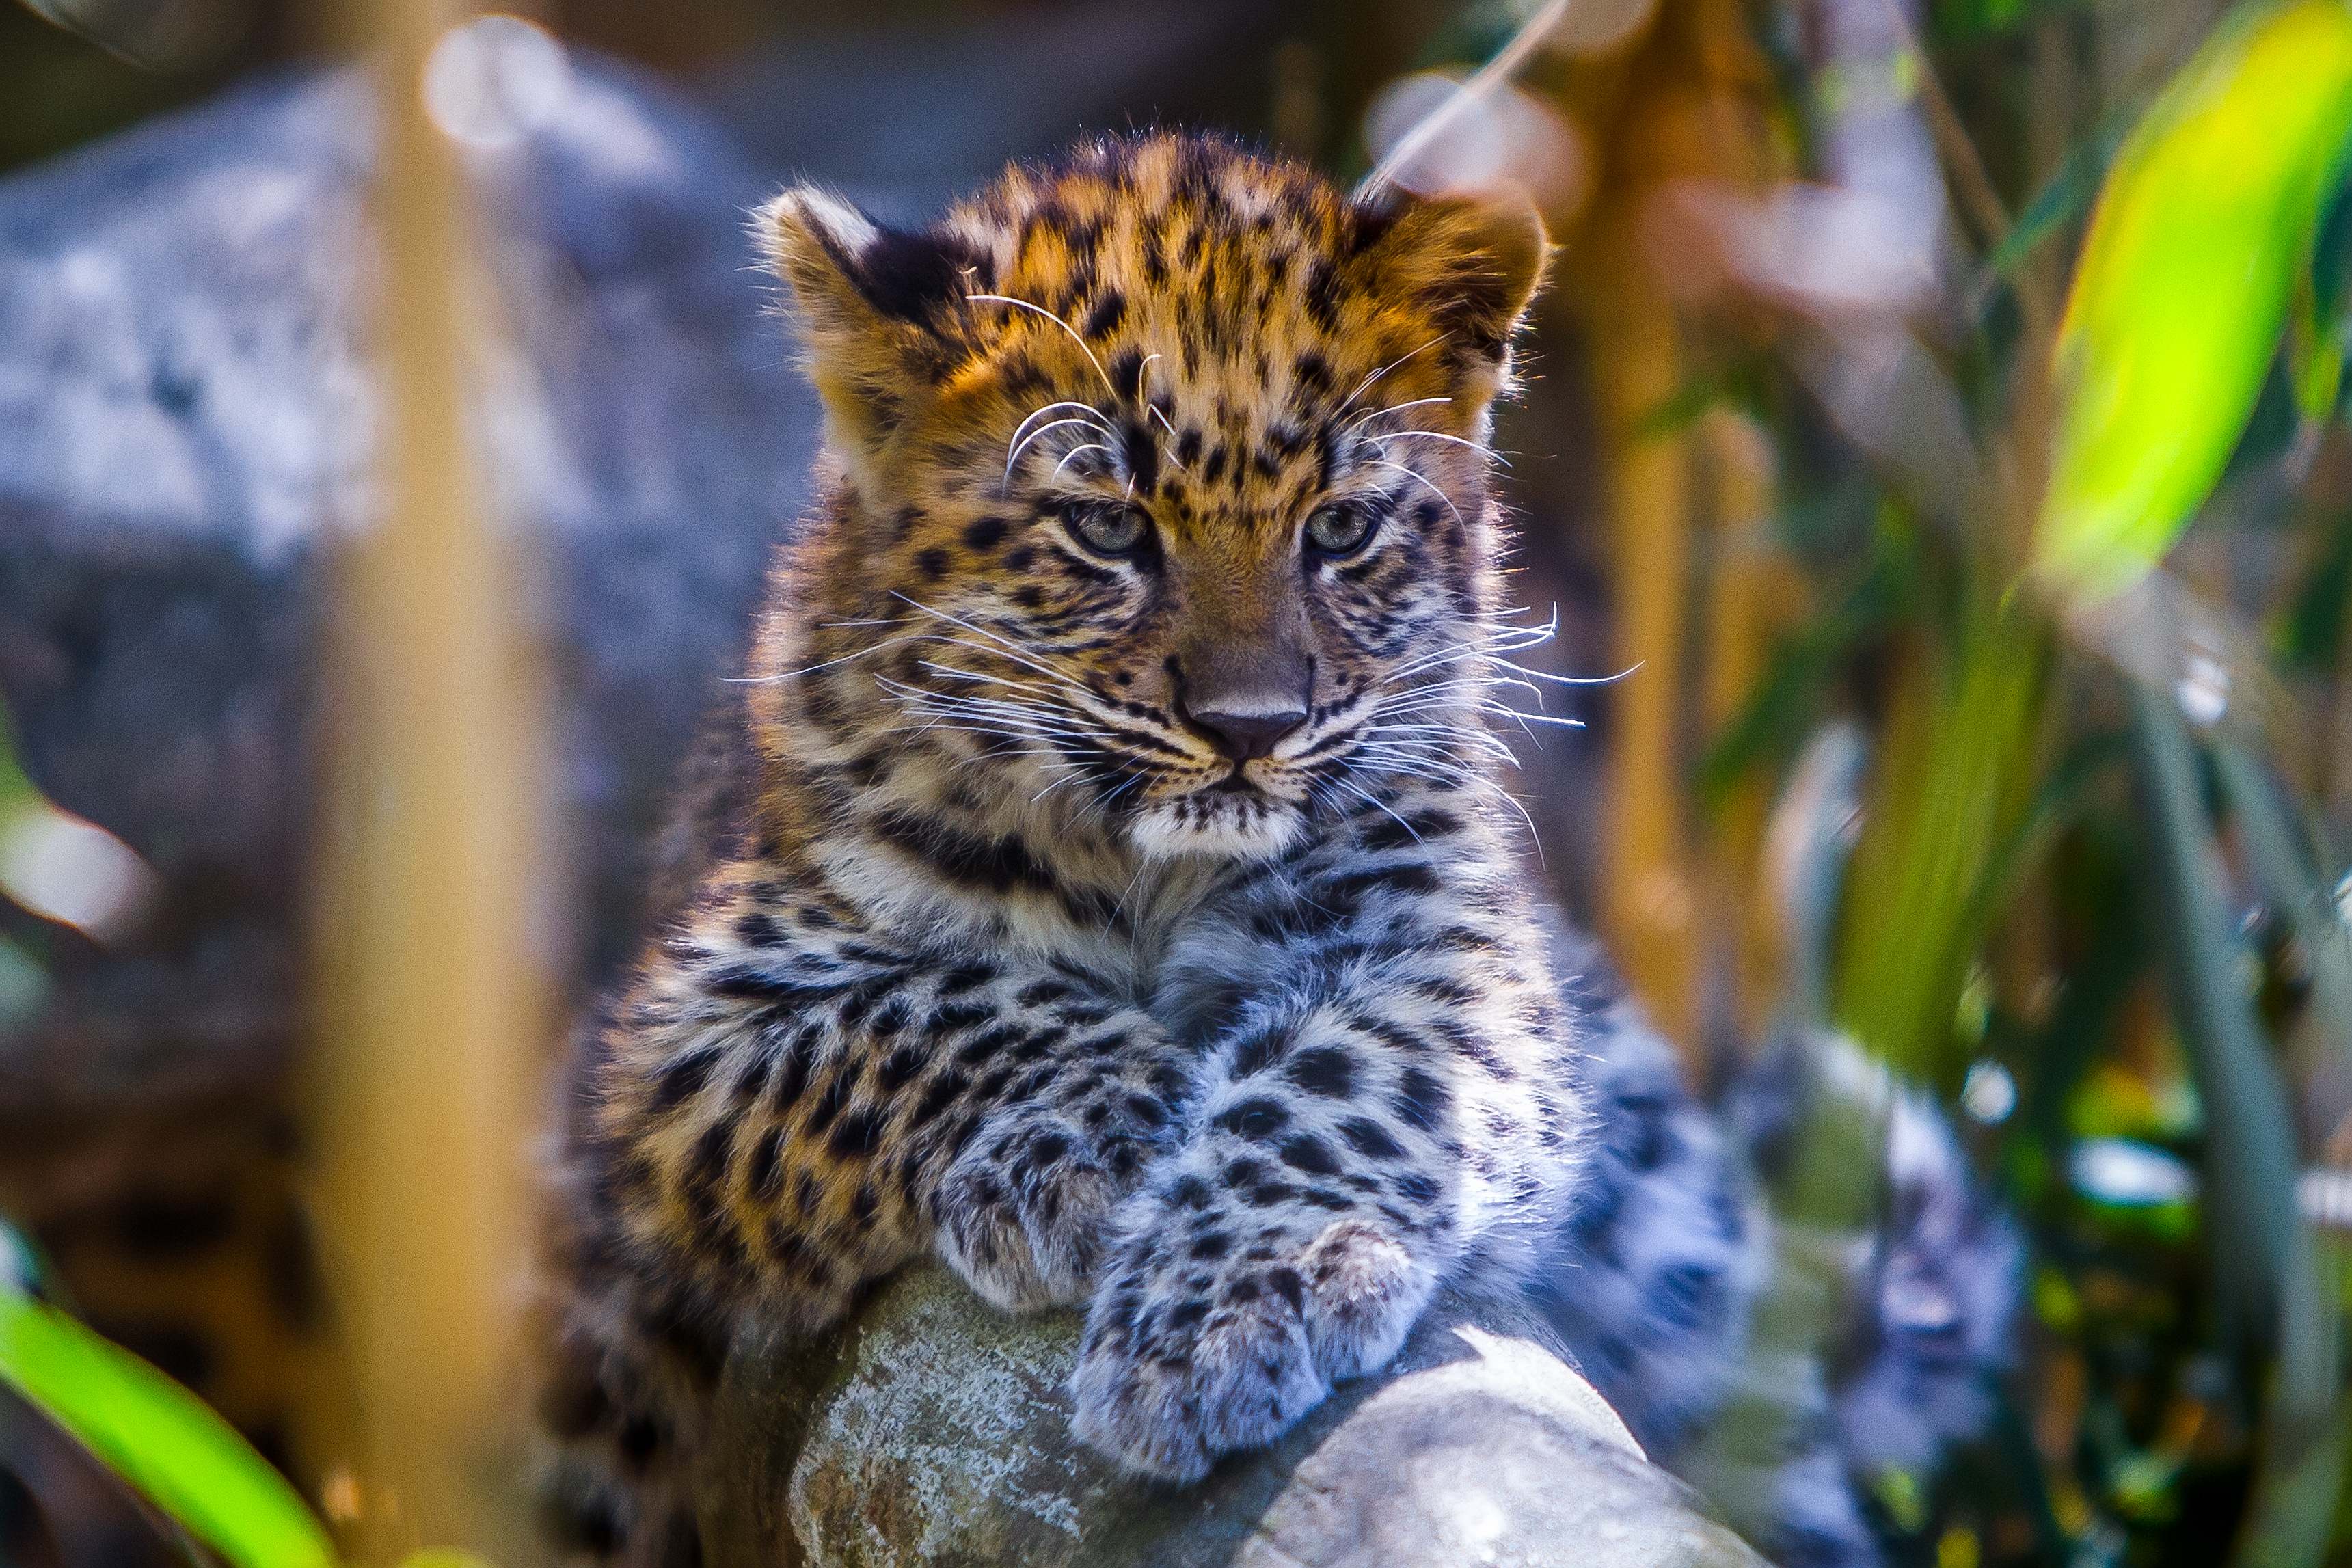 63006 download wallpaper Animals, Young, Leopard, Predator, Sight, Opinion, Joey screensavers and pictures for free